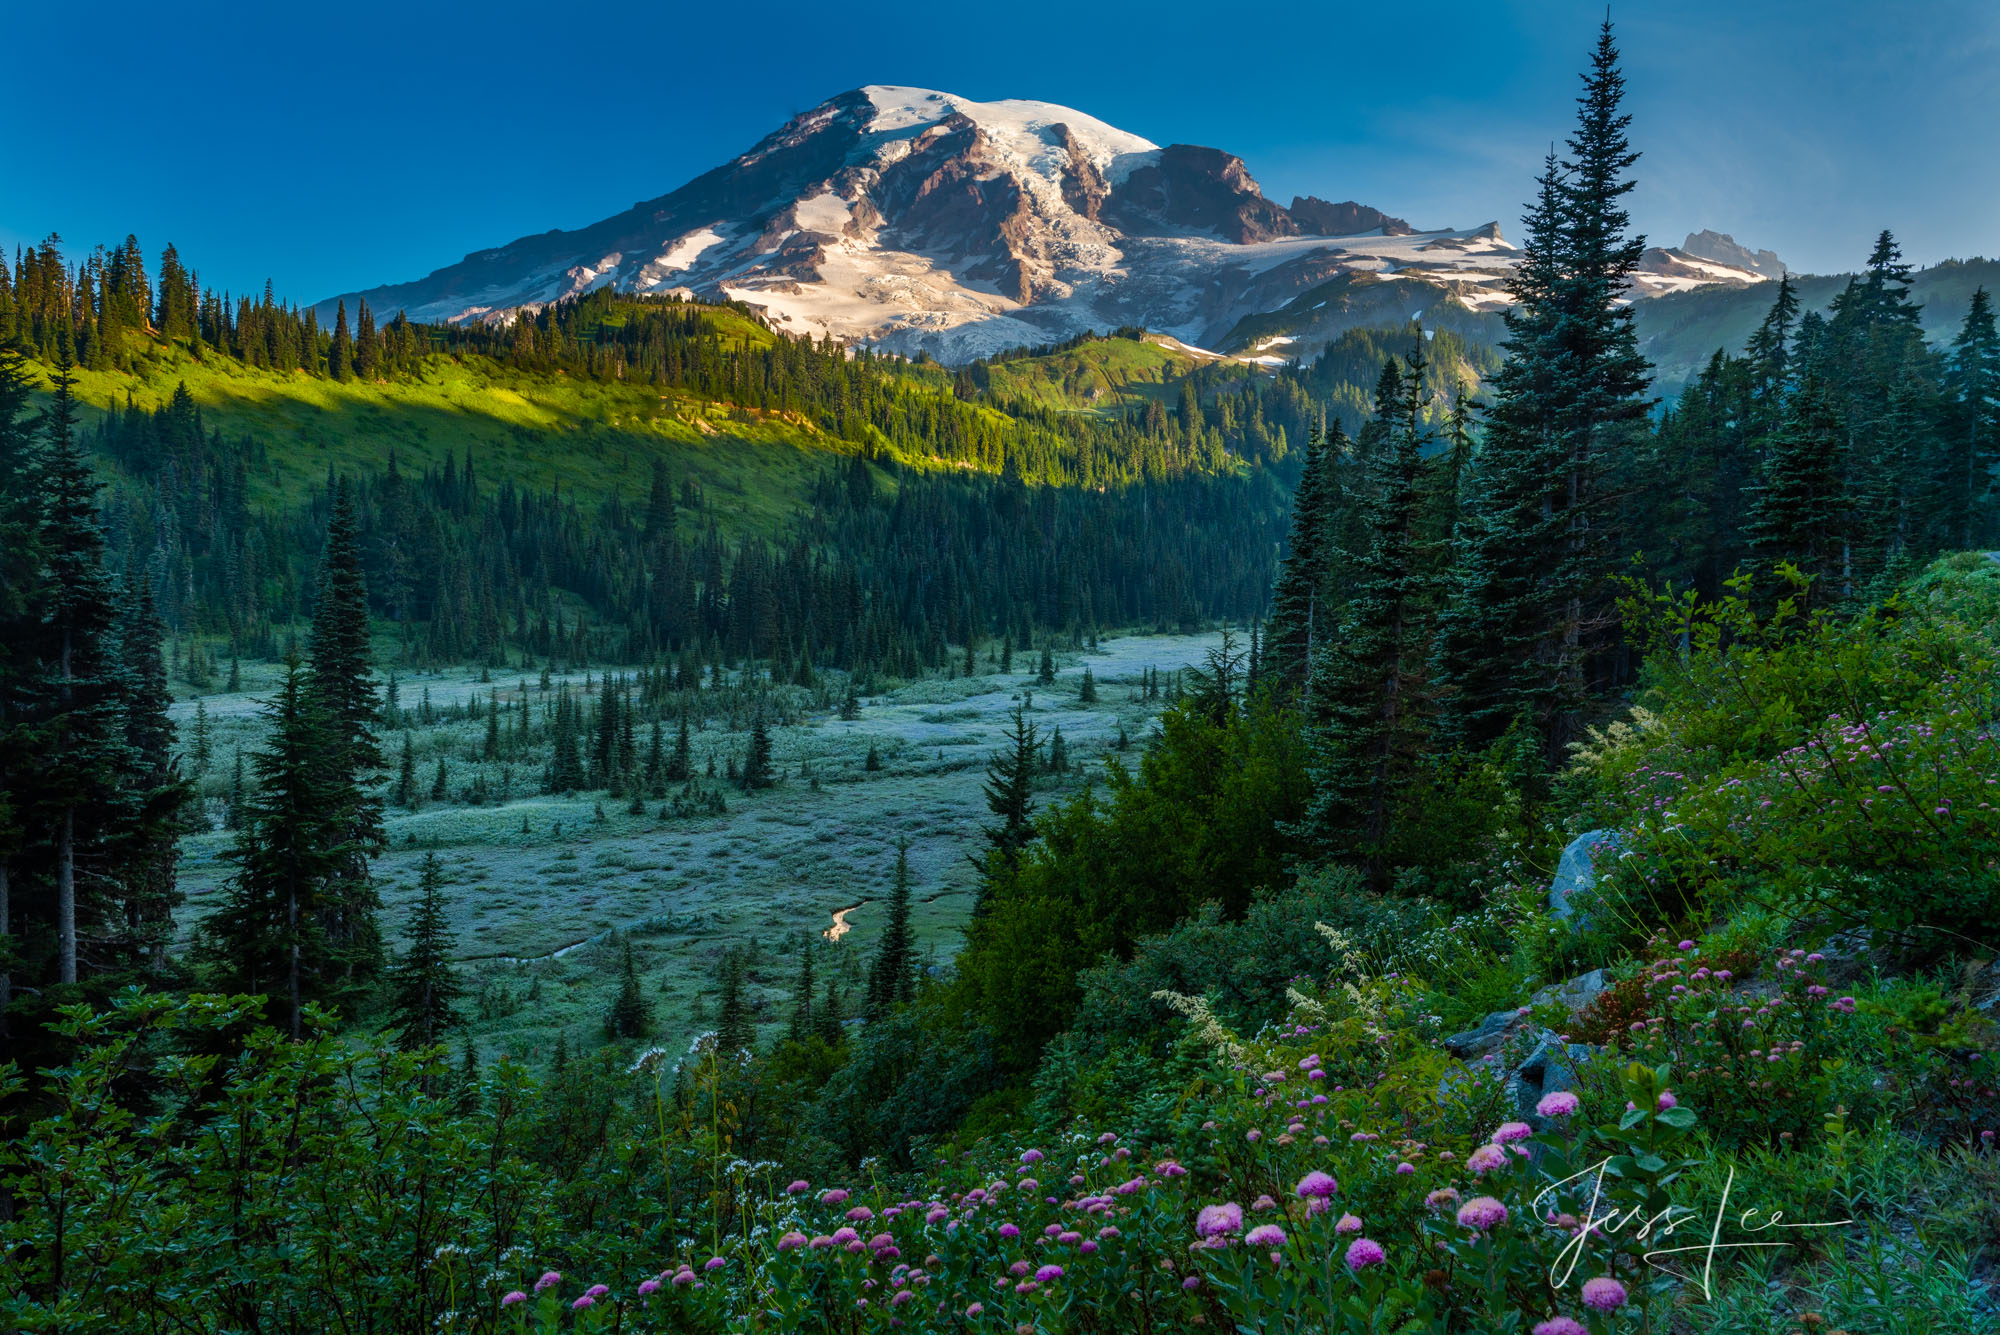 Fine Art Photography Print of Mt Rainier, Washington State, National Parks, wilderness photo, nature, mountain, summer, flowers, Pacific Northwest, PNW, flowers, field, evergreen trees, pine trees, photo